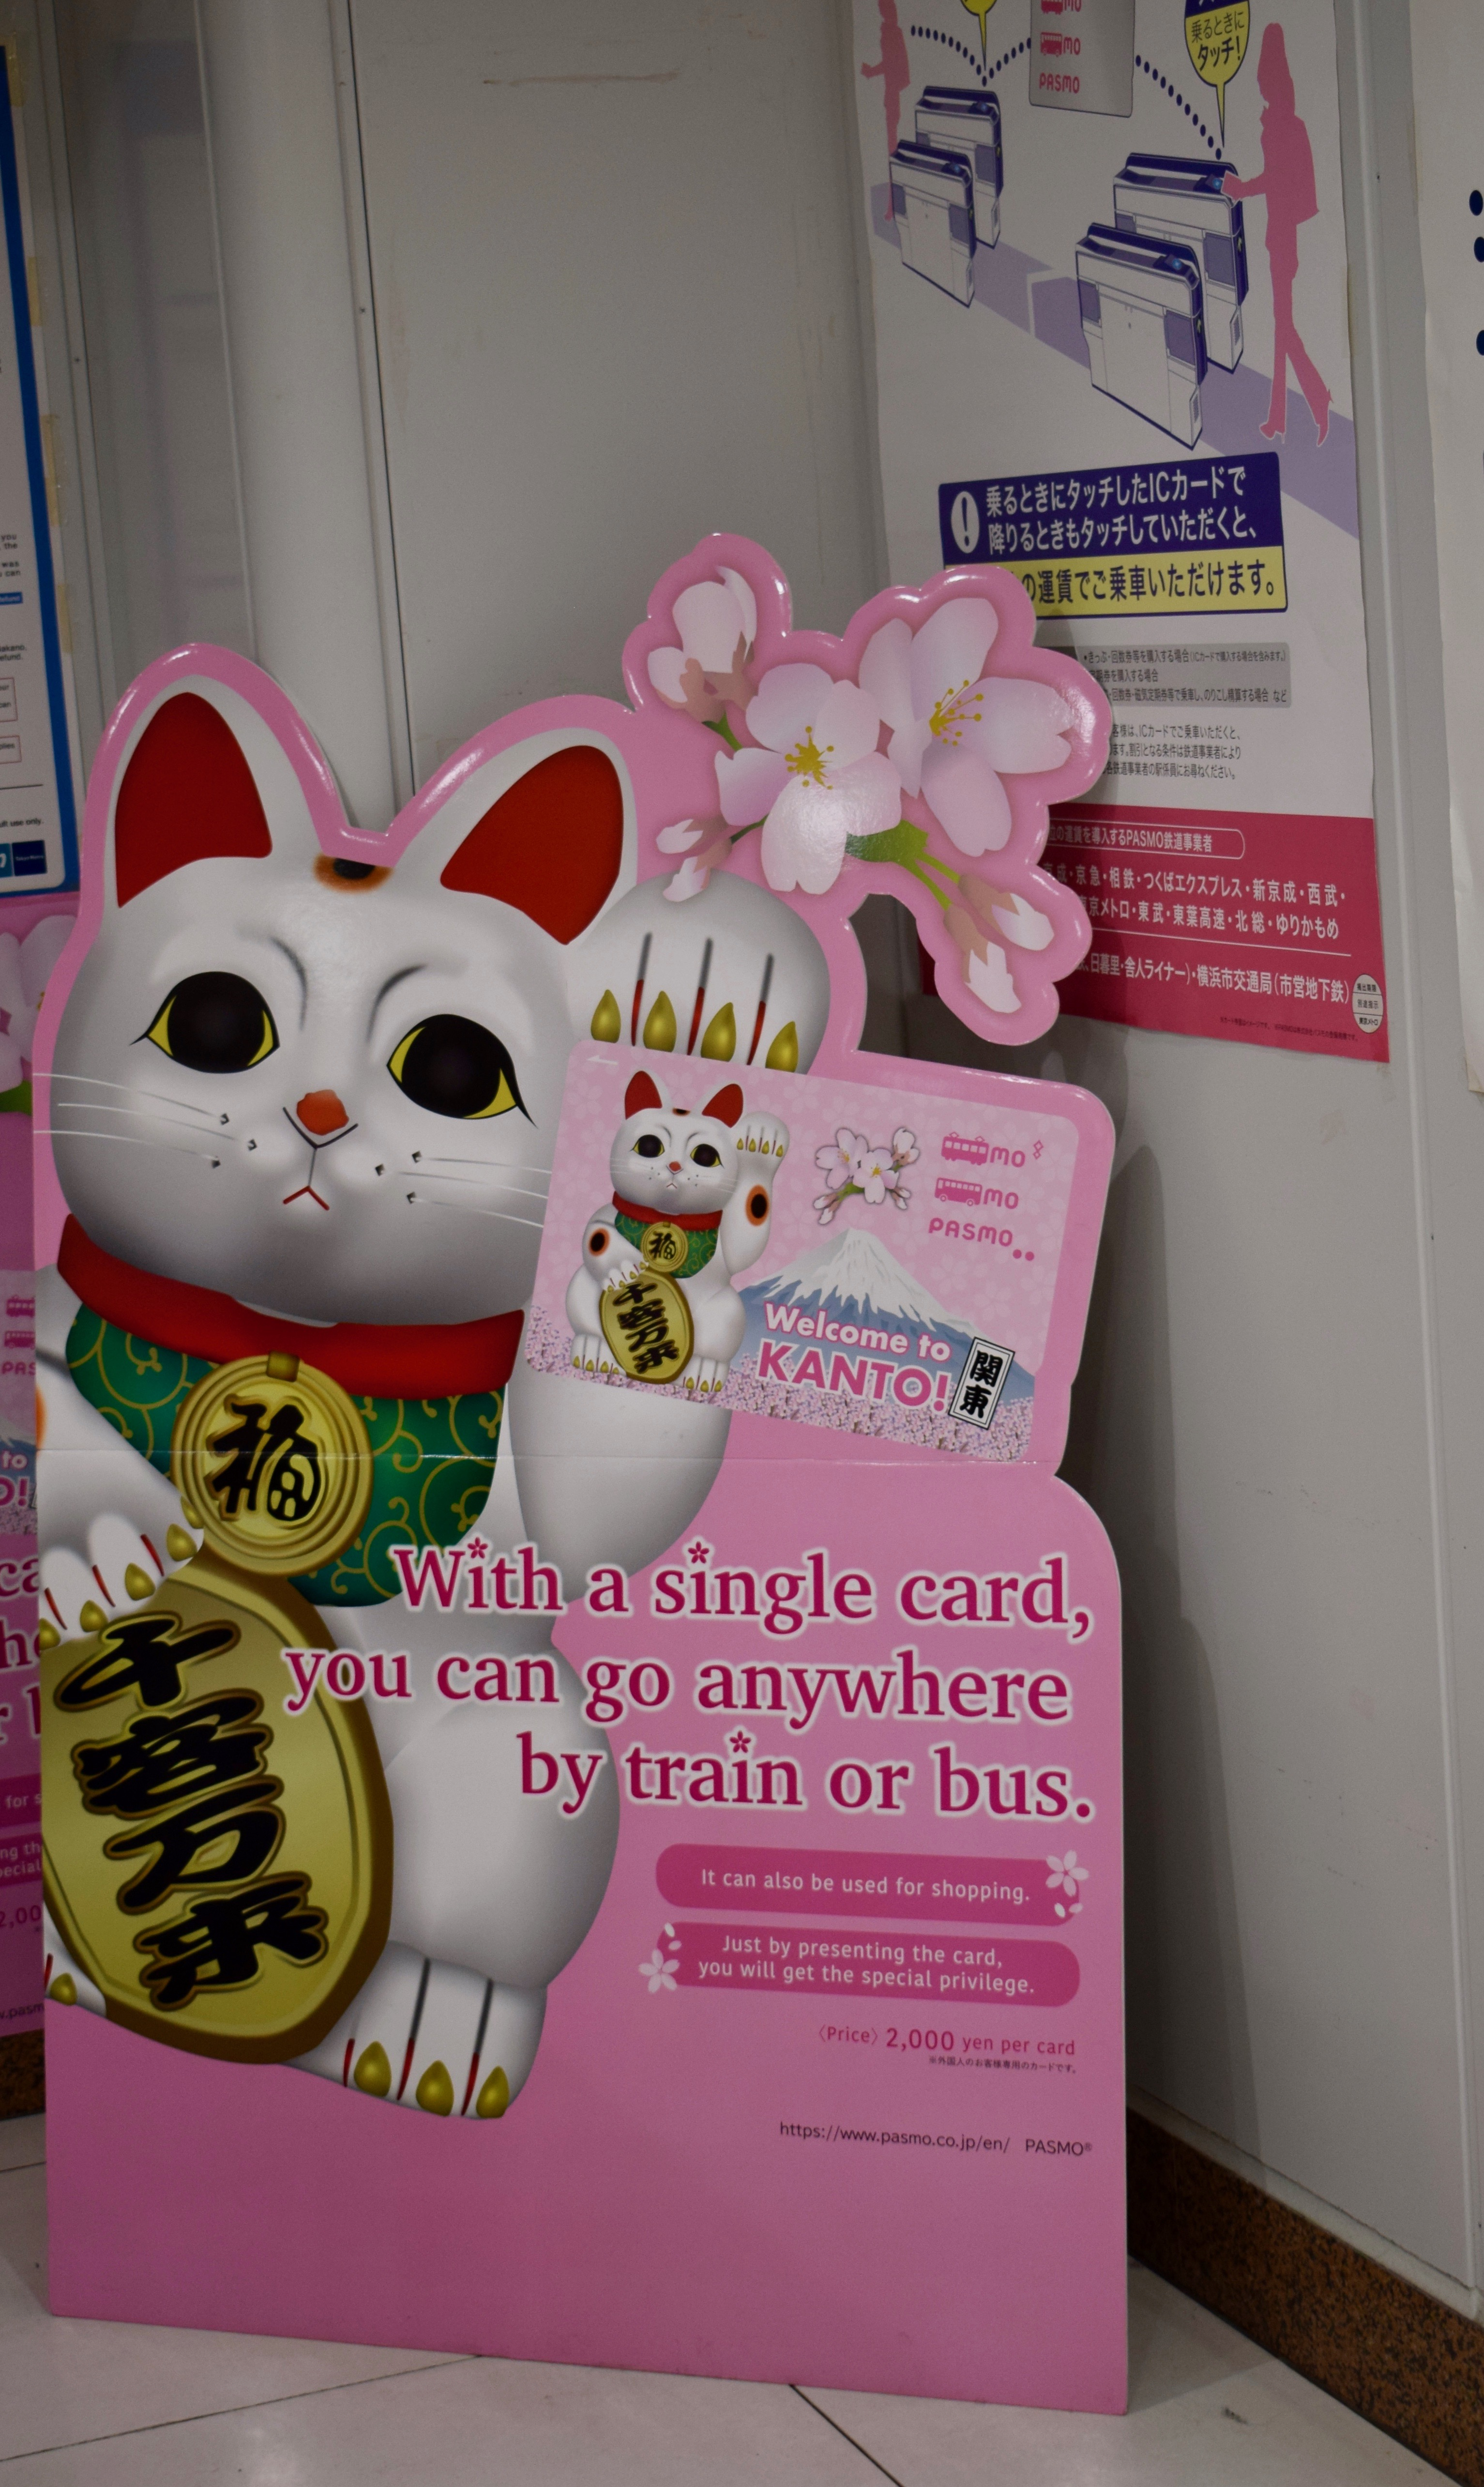 Ad For A Kanto PASMO Card Allowing Travel In The Kanto Area Japan